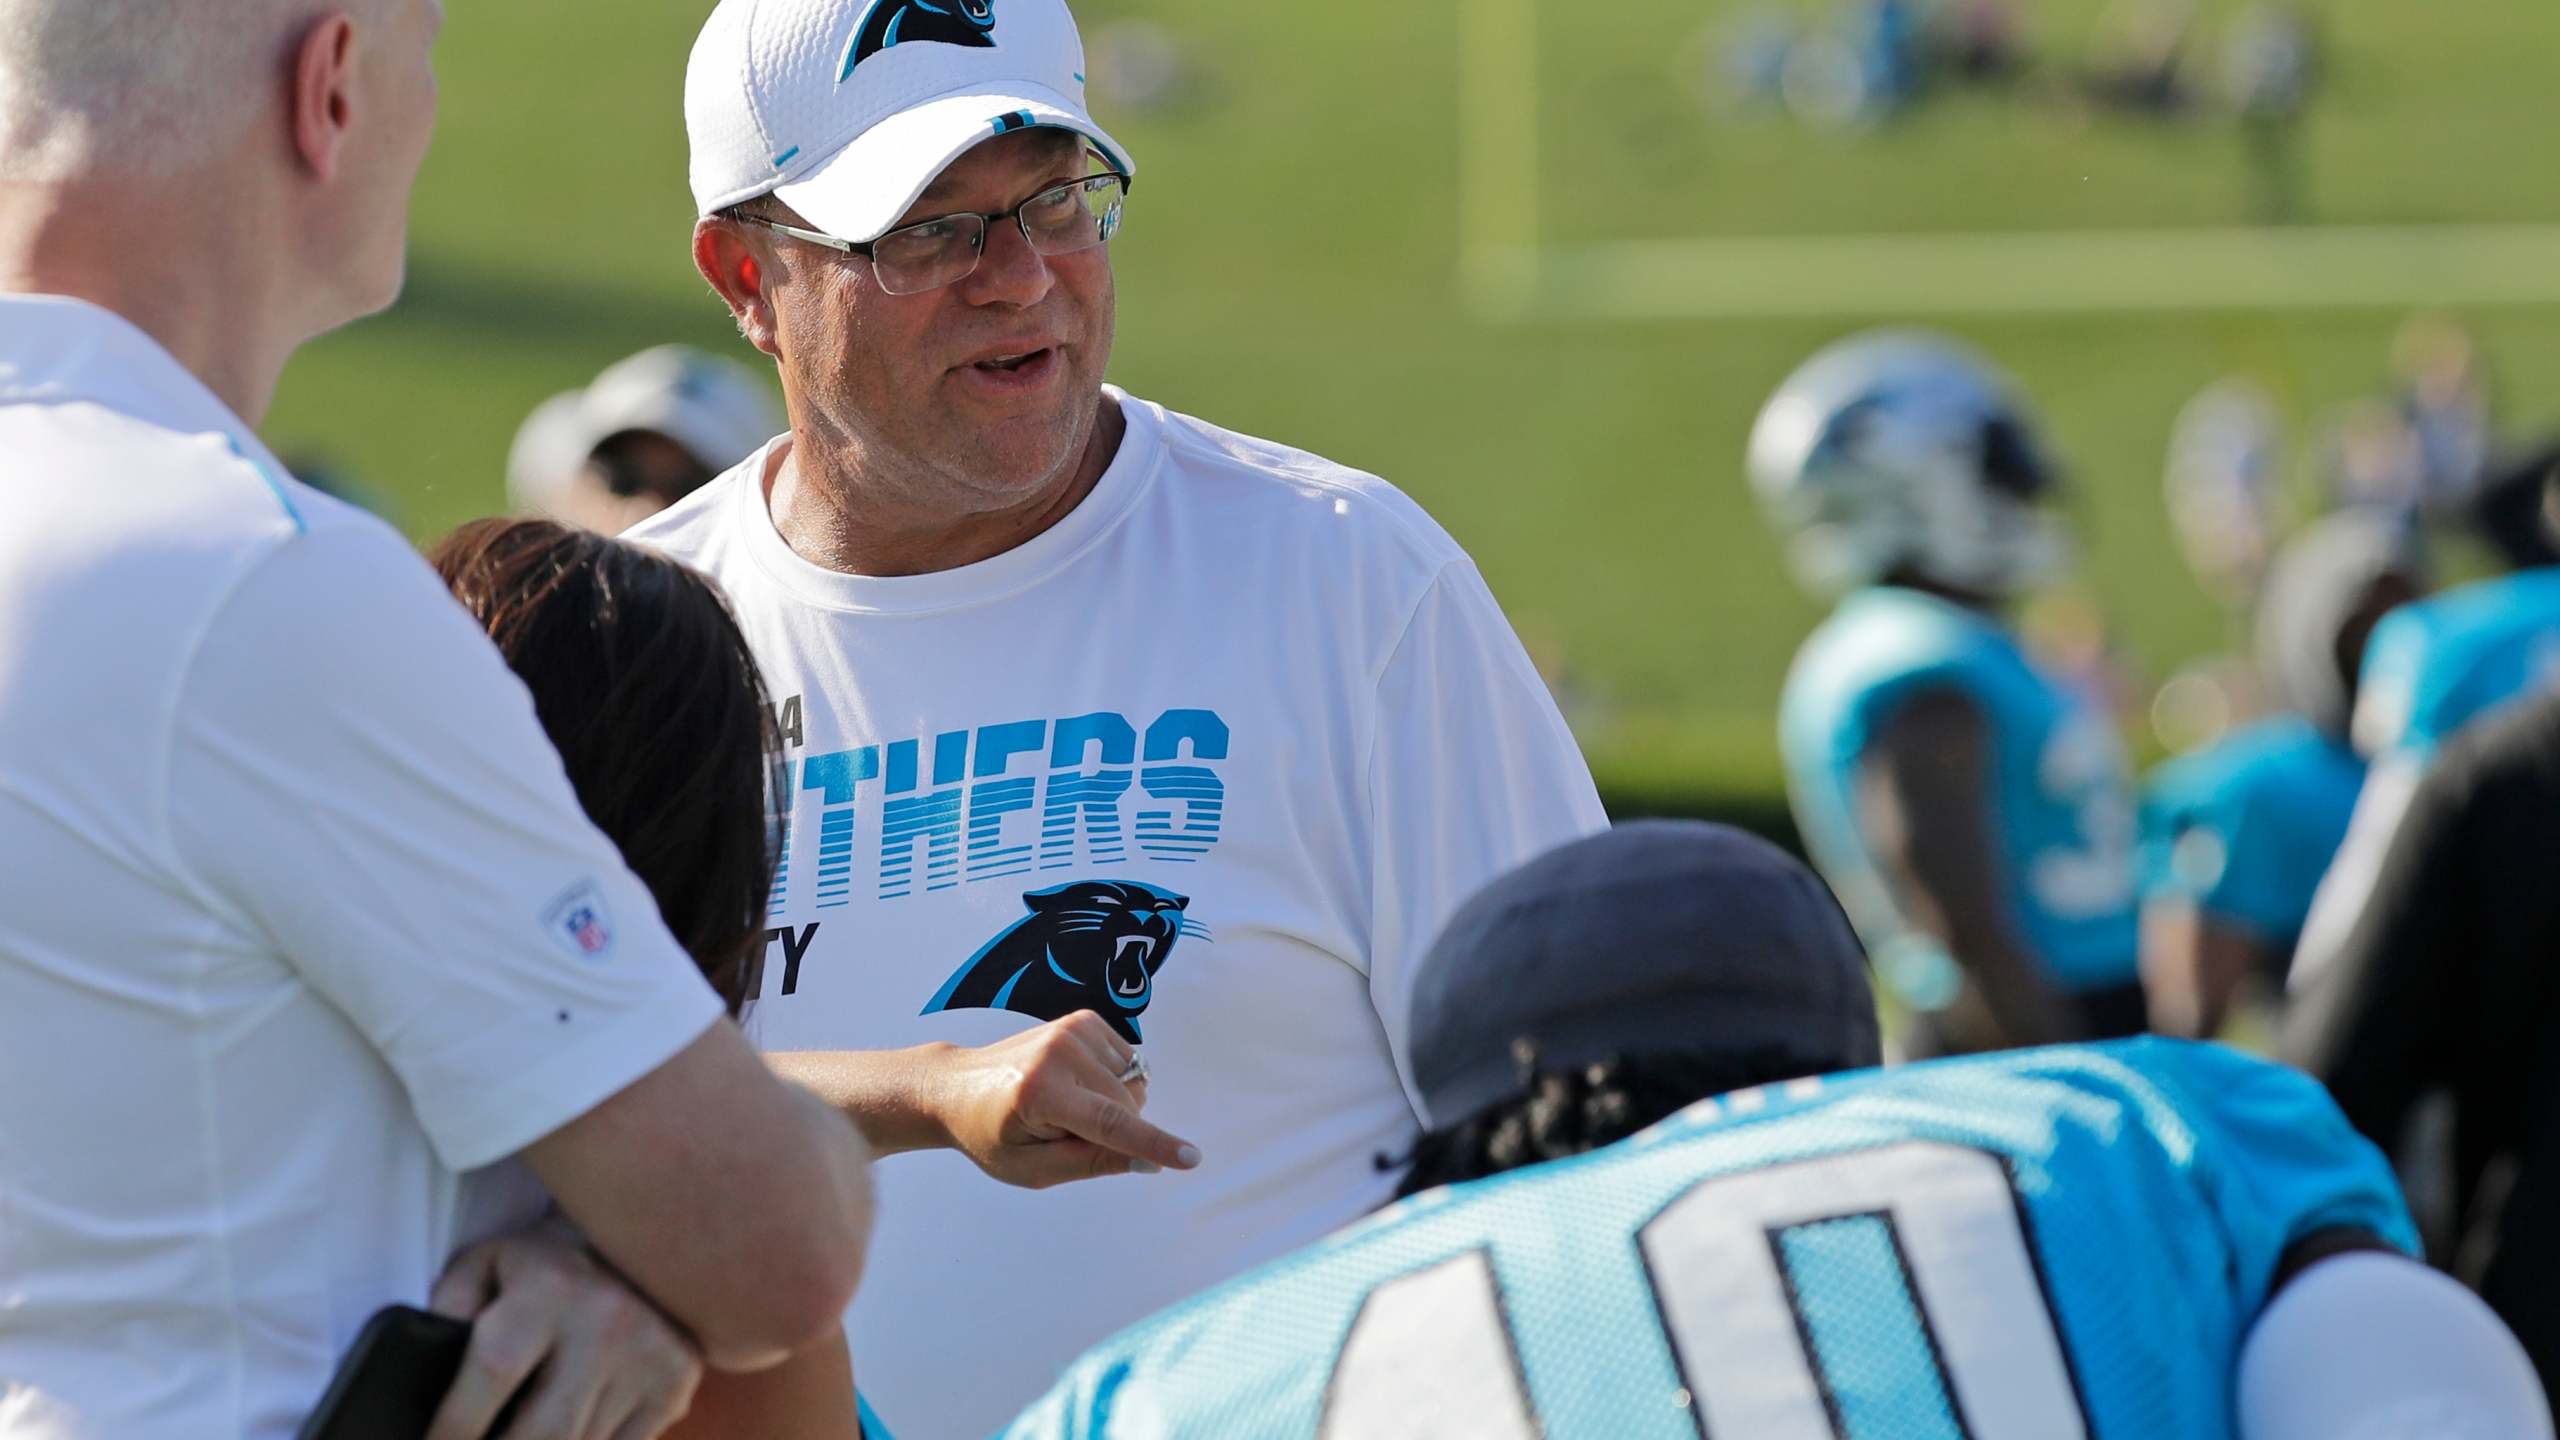 Carolina Panthers owner David Tepper watches his team during practice at the NFL football team's training camp in Spartanburg, N.C., Thursday, July 25, 2019.